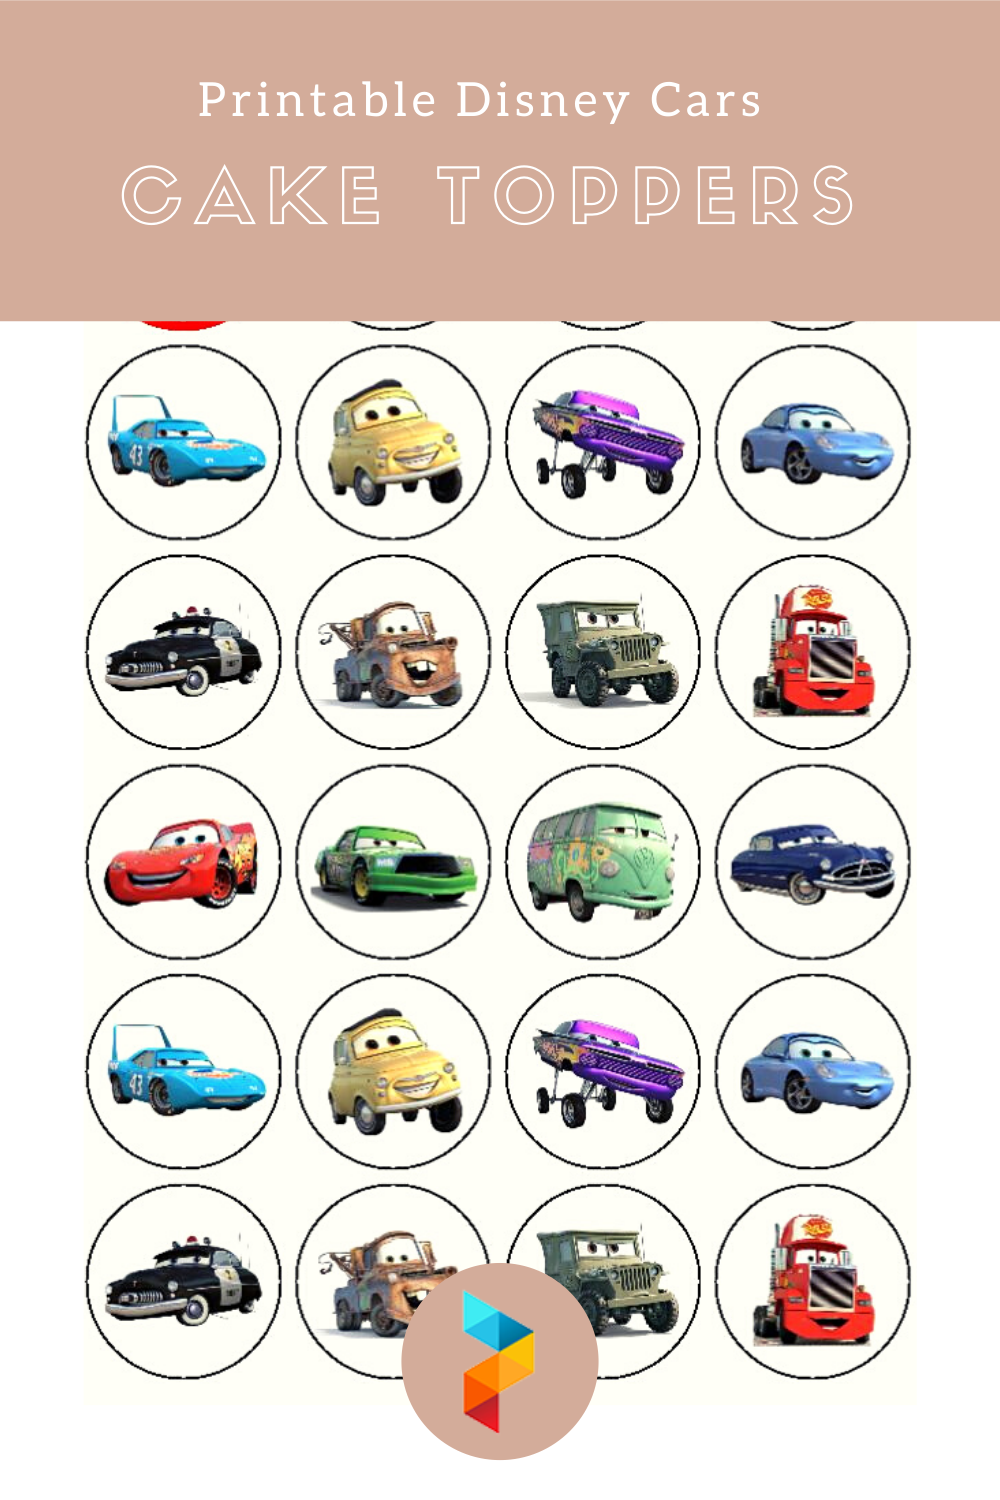 Printable Disney Cars Cake Toppers